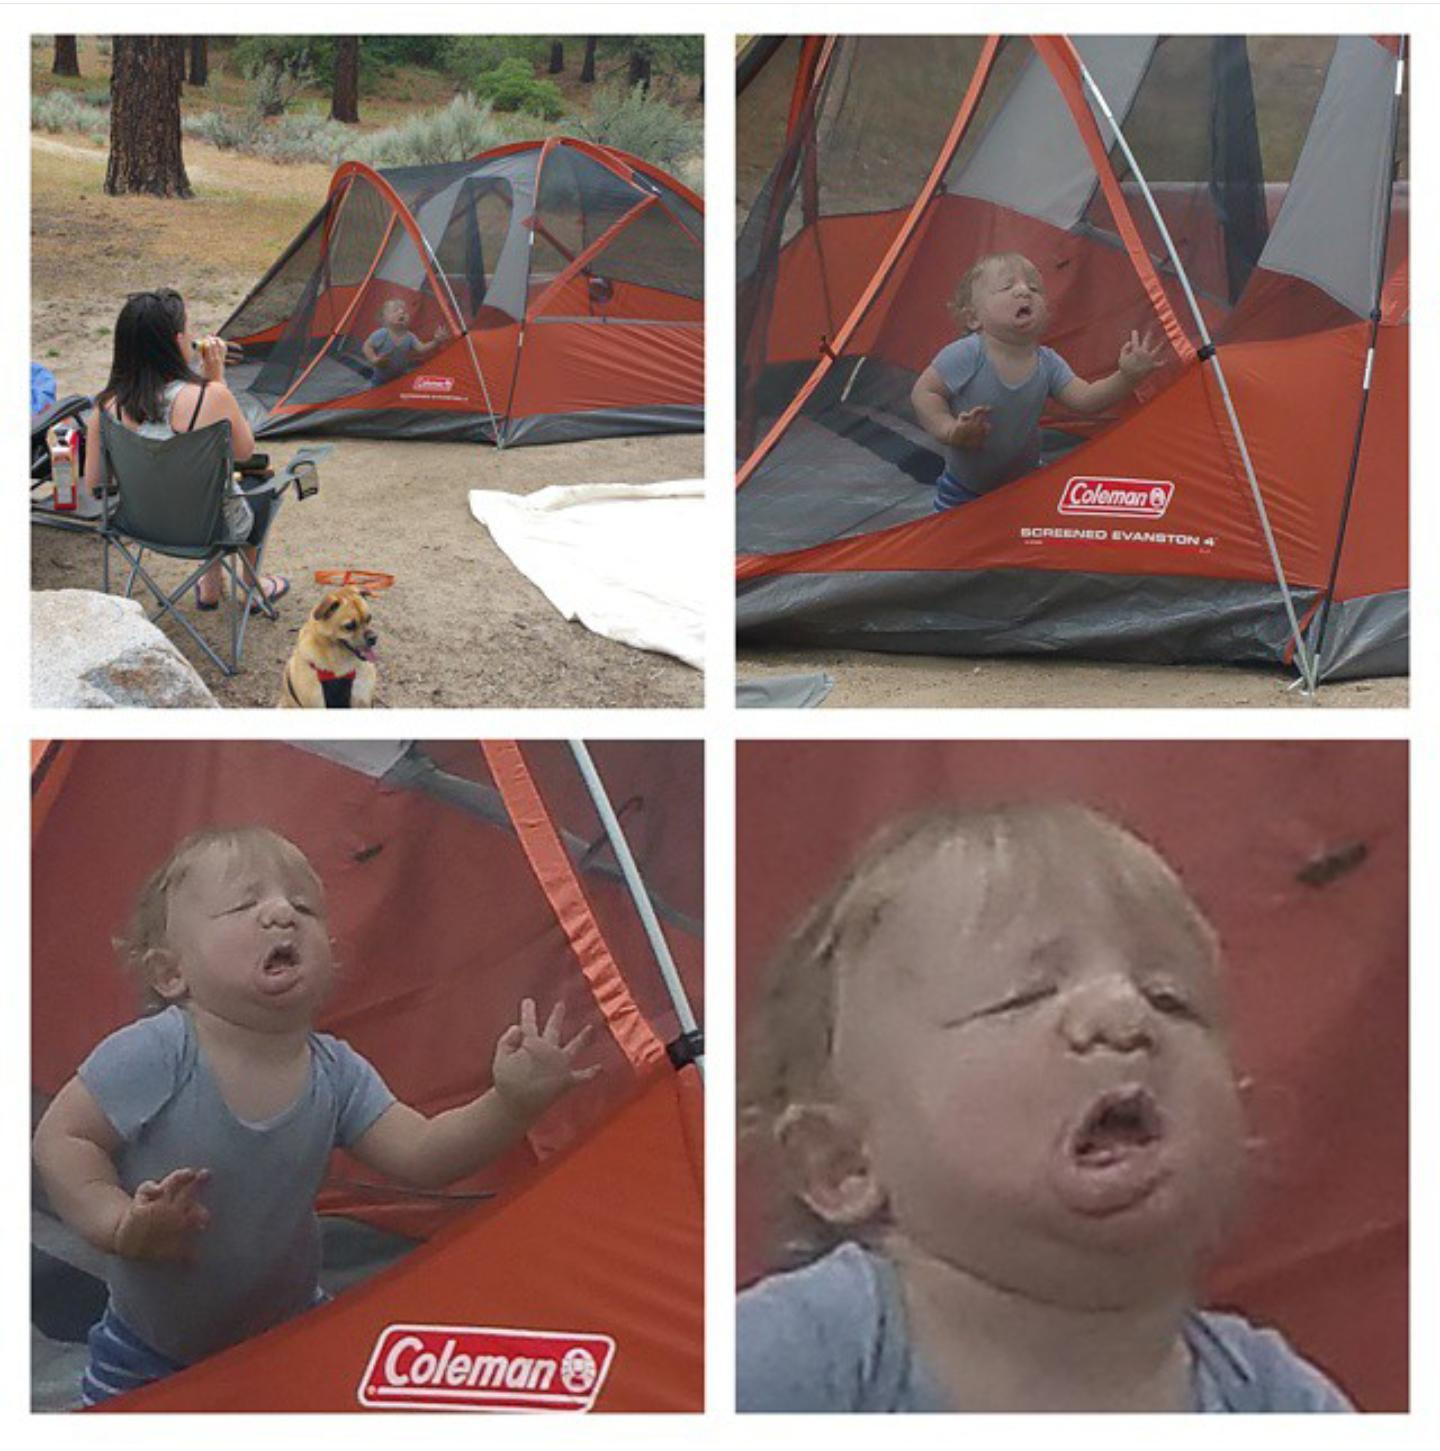 My kid had a blast camping for the first time.